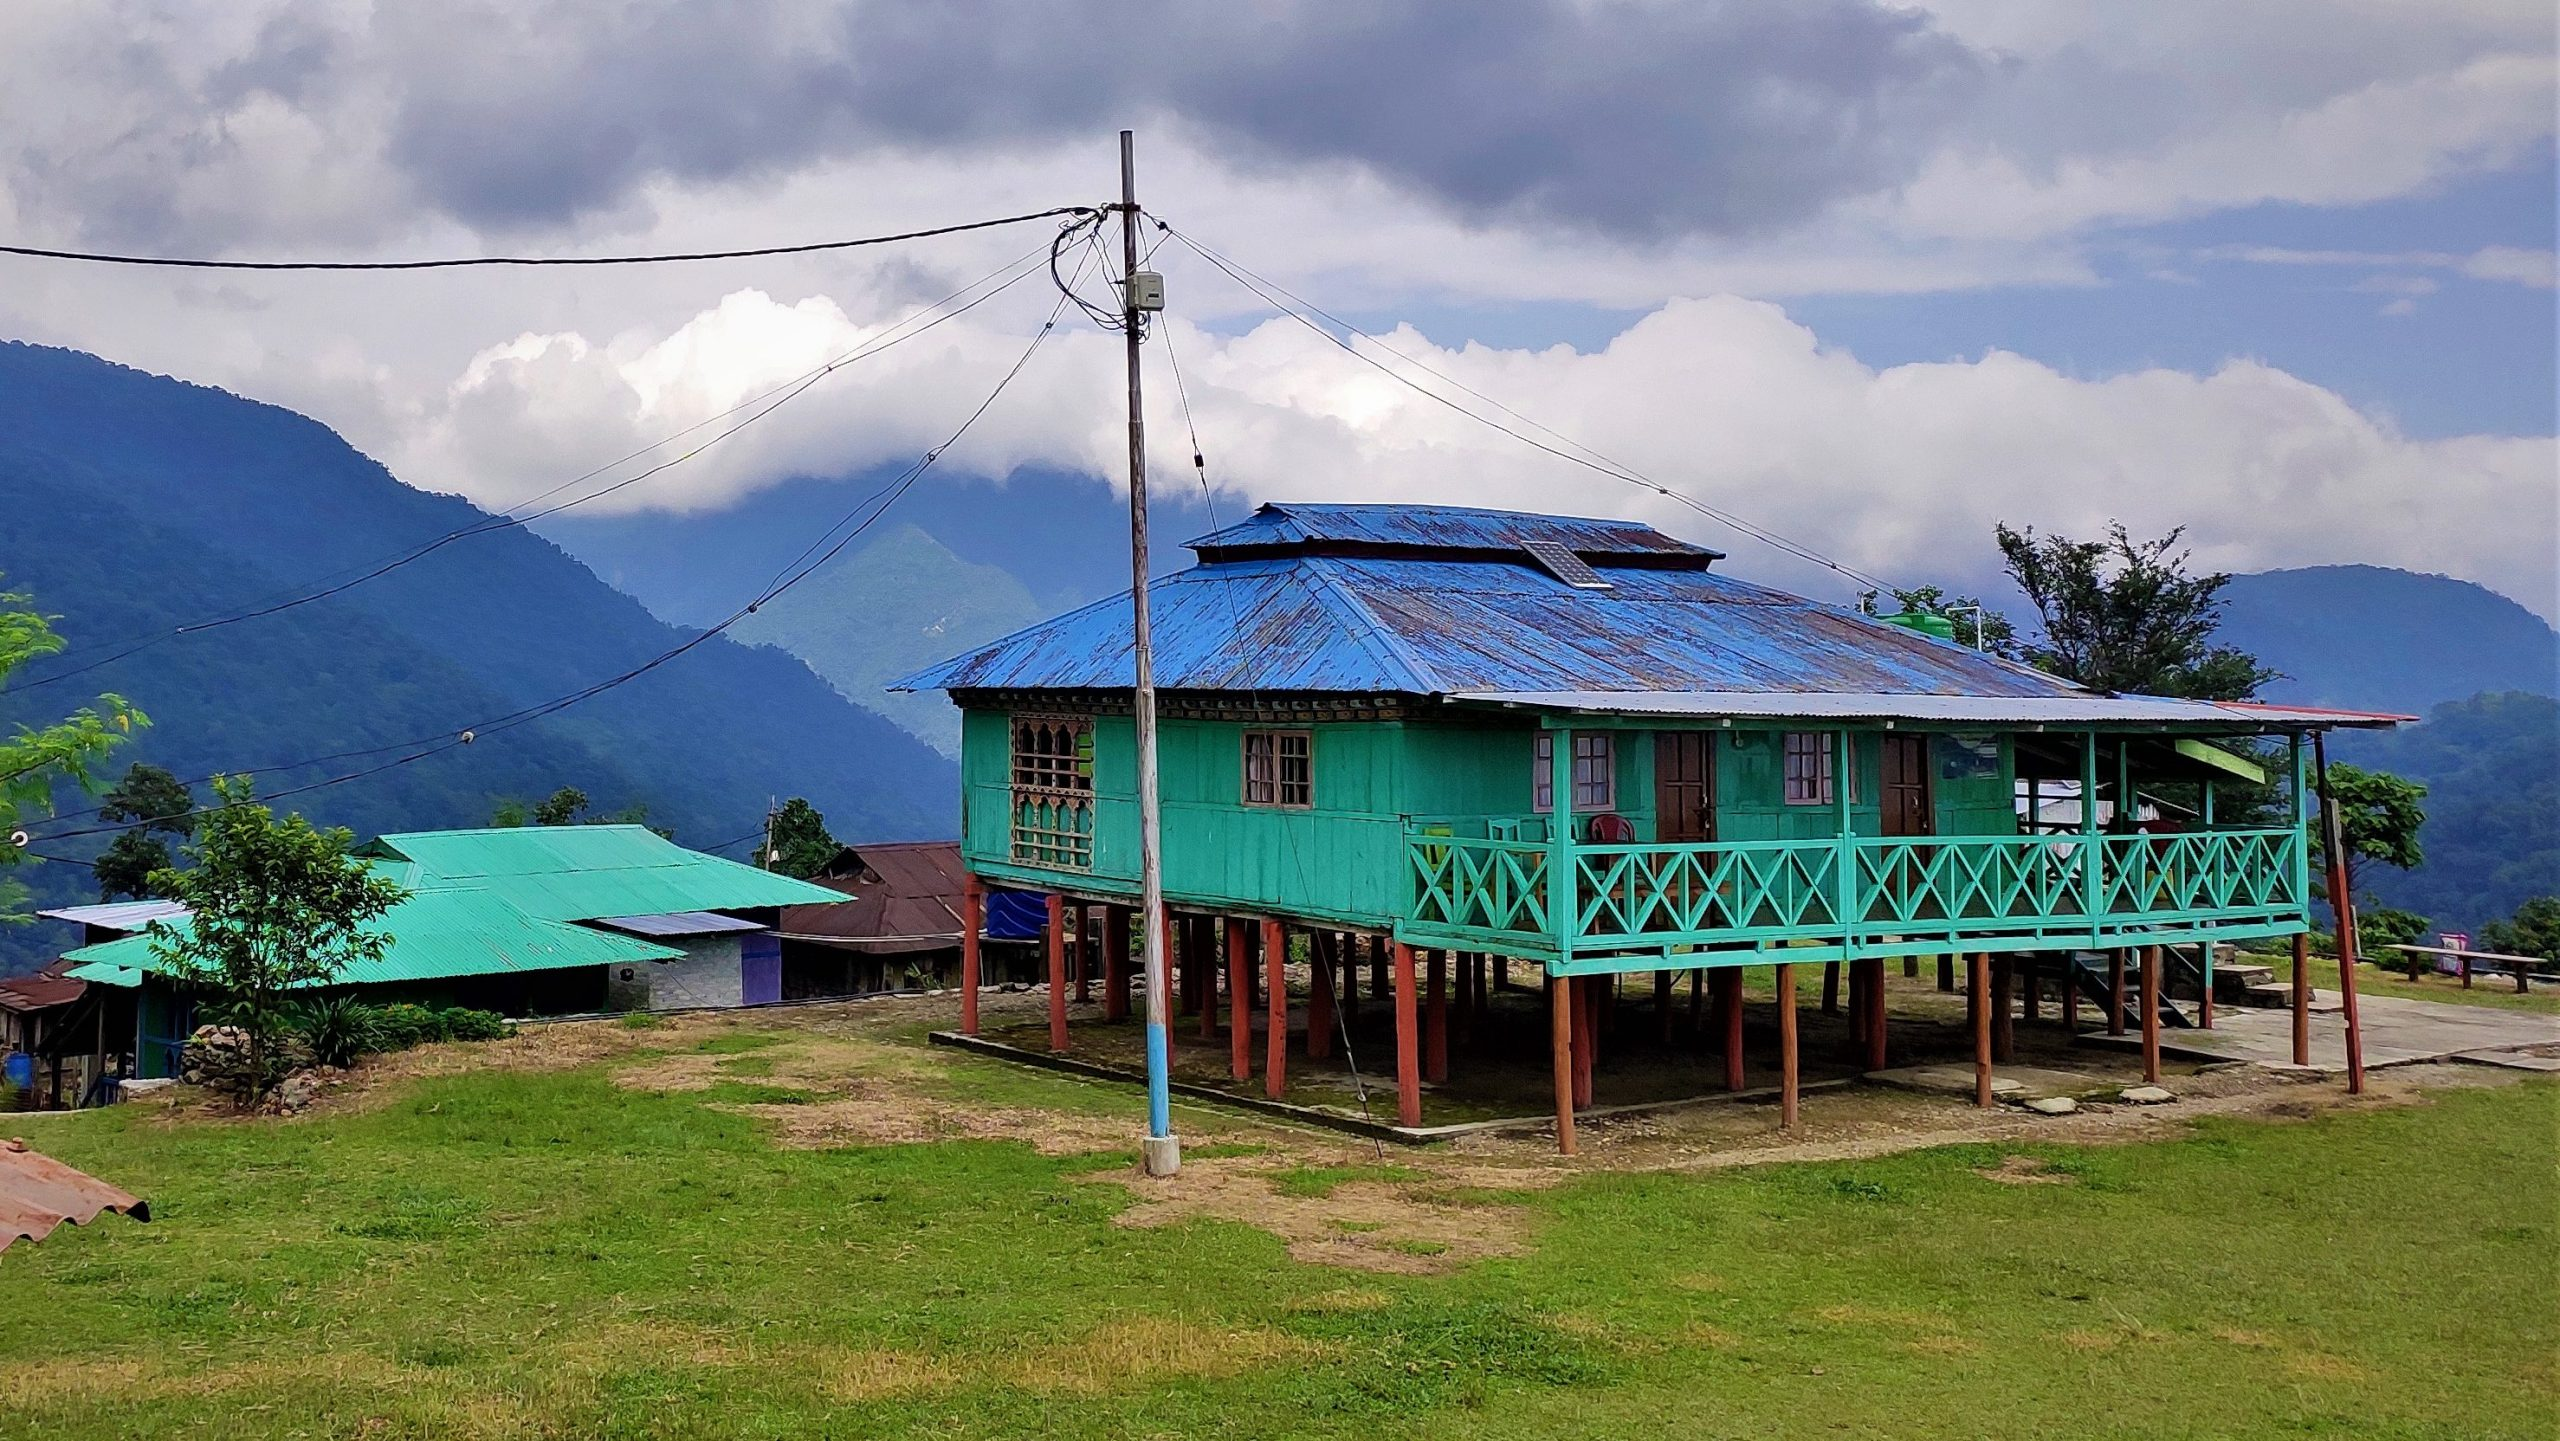 Heaven of Dooars Homestay, Lepchakha is a great place for an amazing solo trip